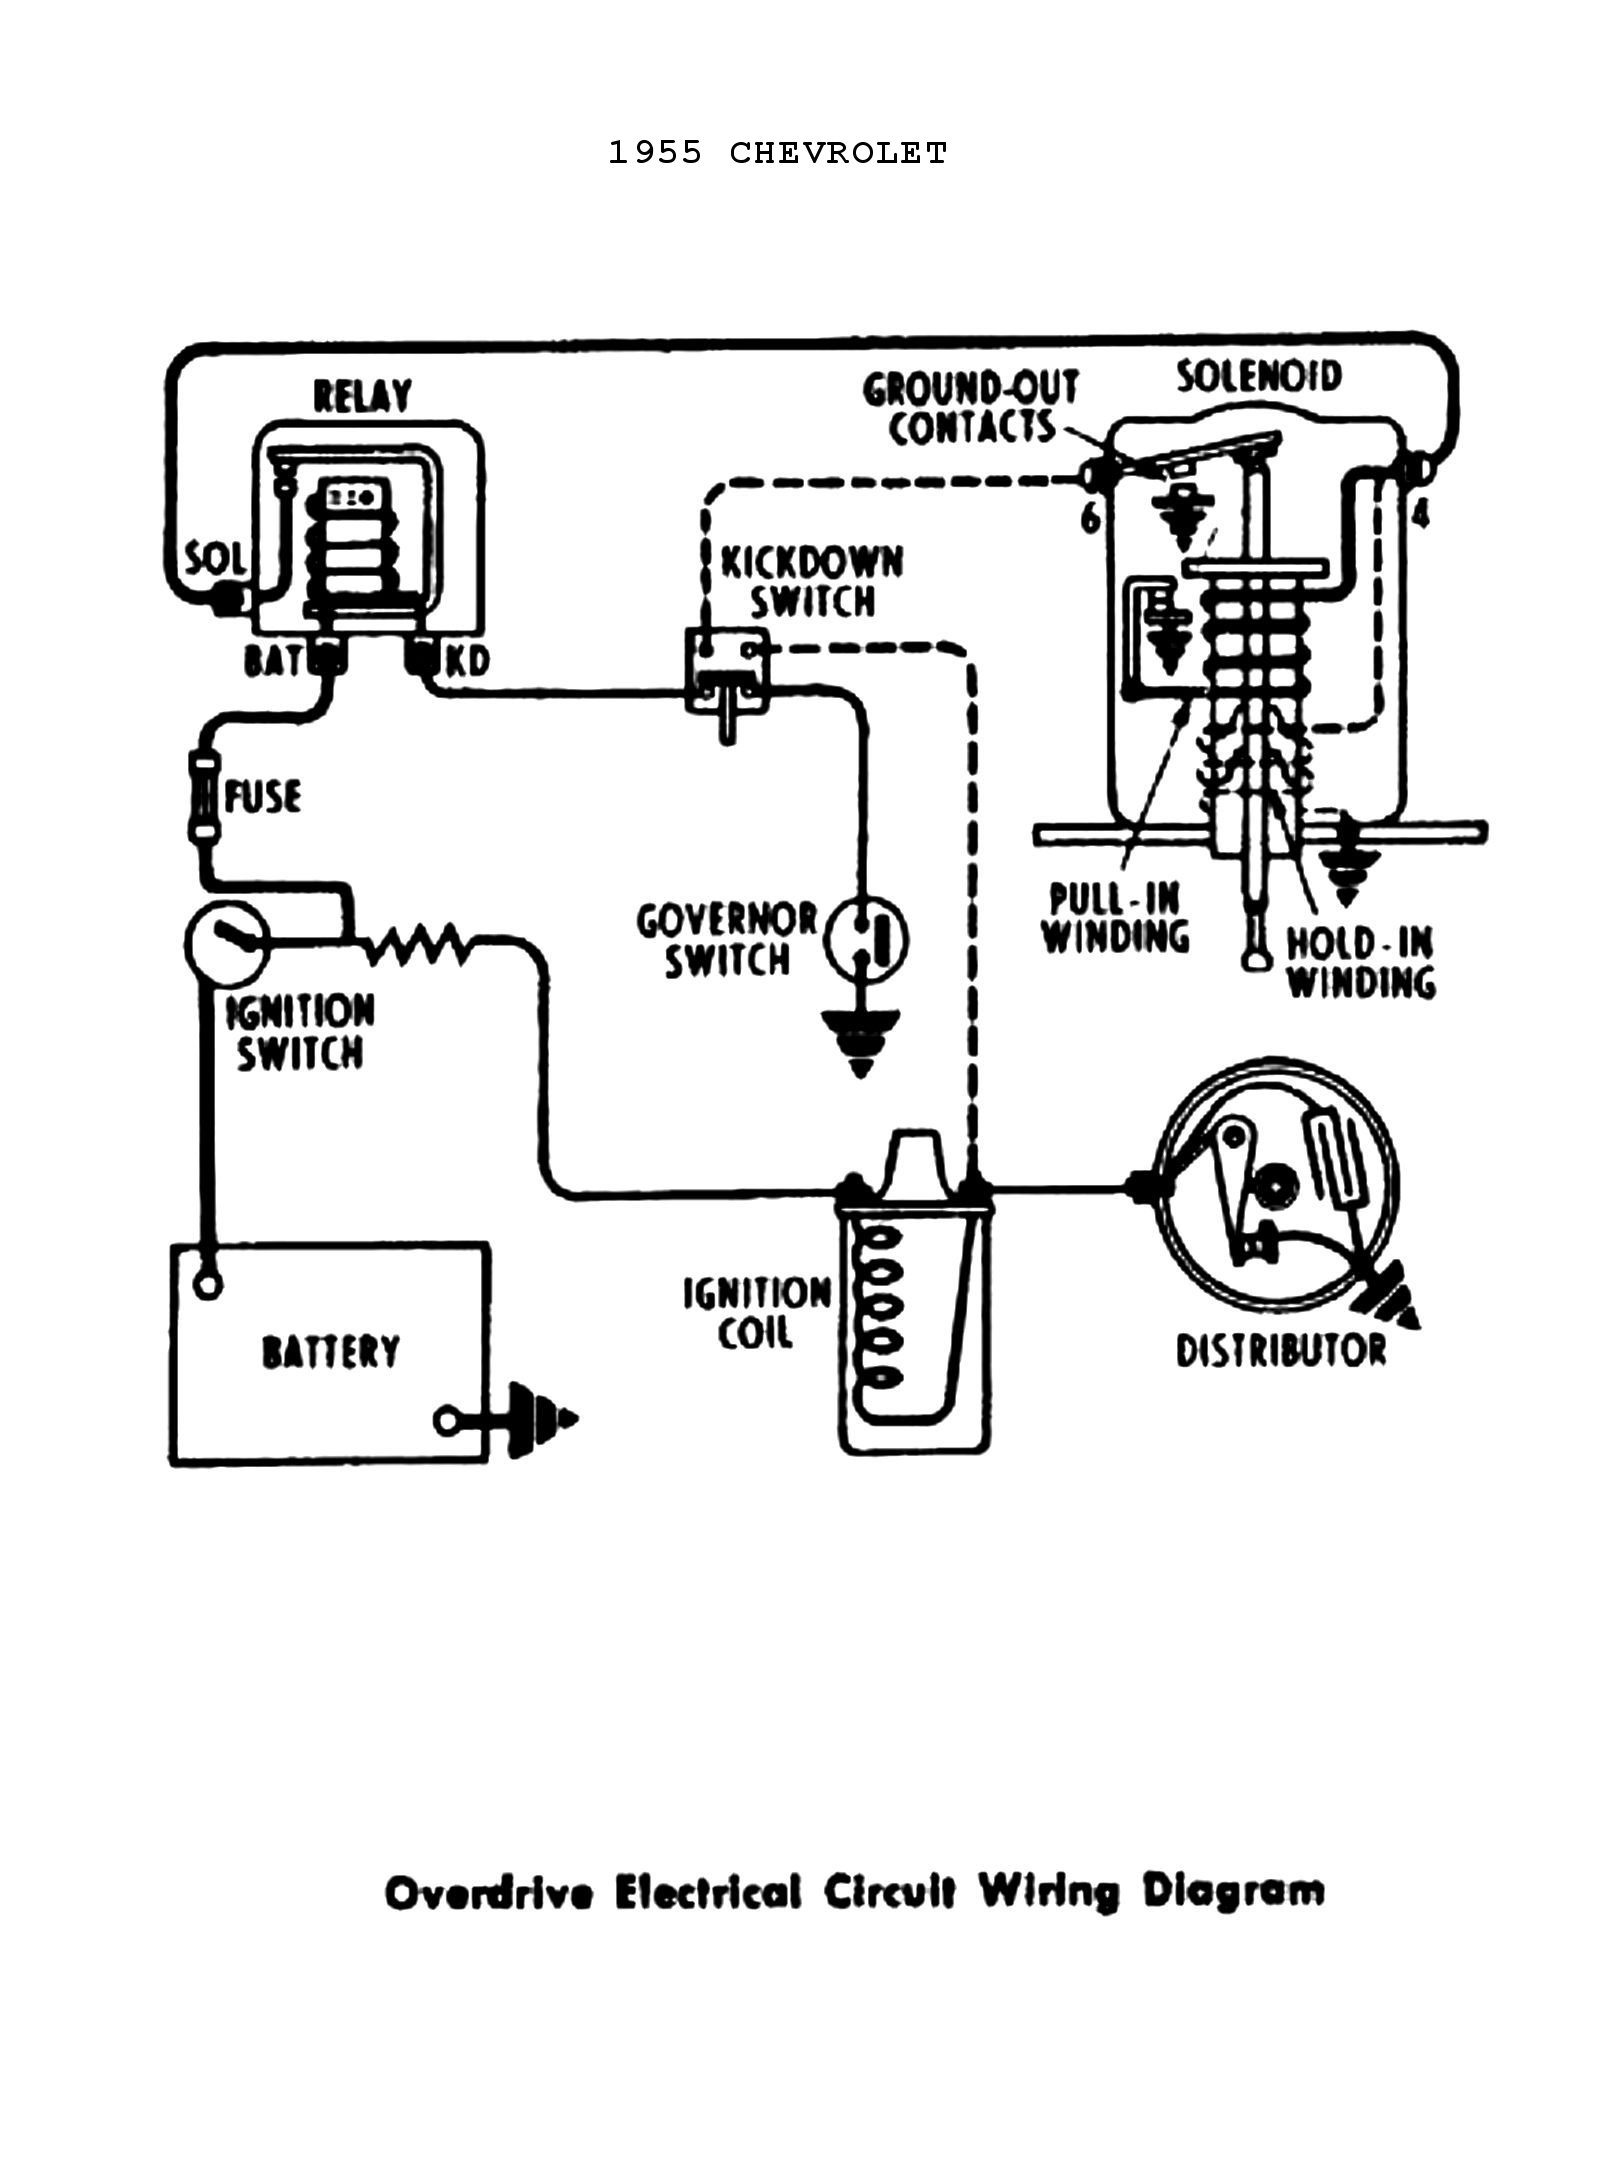 Chevy Wiring Diagrams. 1955 Power Windows Seats Overdrive Circuit. GM. Basic GM Wiring Diagram At Scoala.co